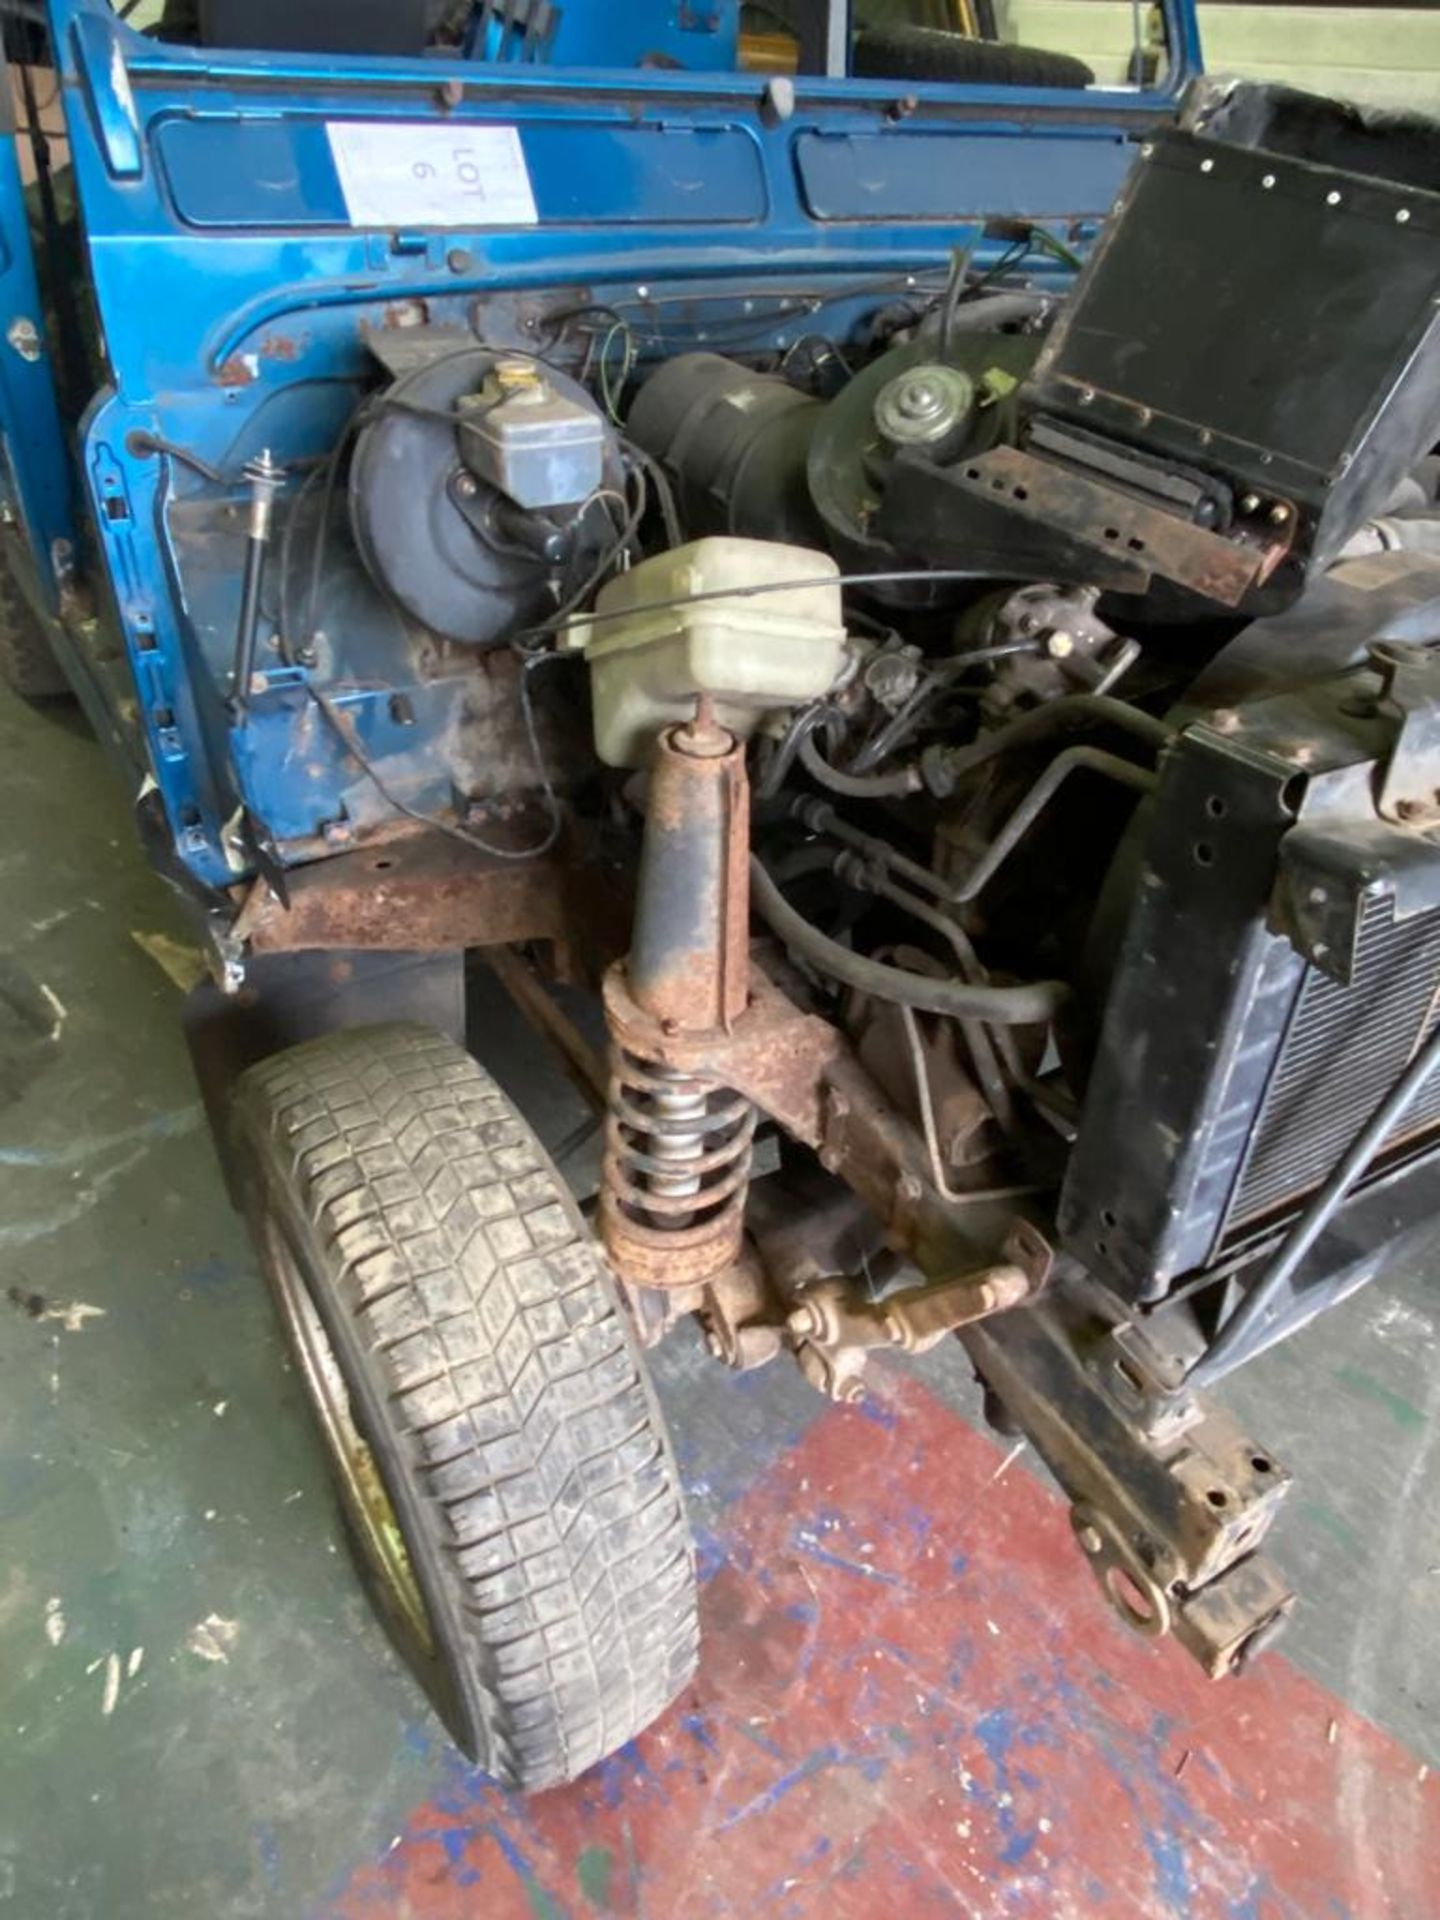 Land Rover 110 County, 300 TDI Engine Appears Mostly Complete - No Bumper, Bonnet, Glass etc As - Image 18 of 26